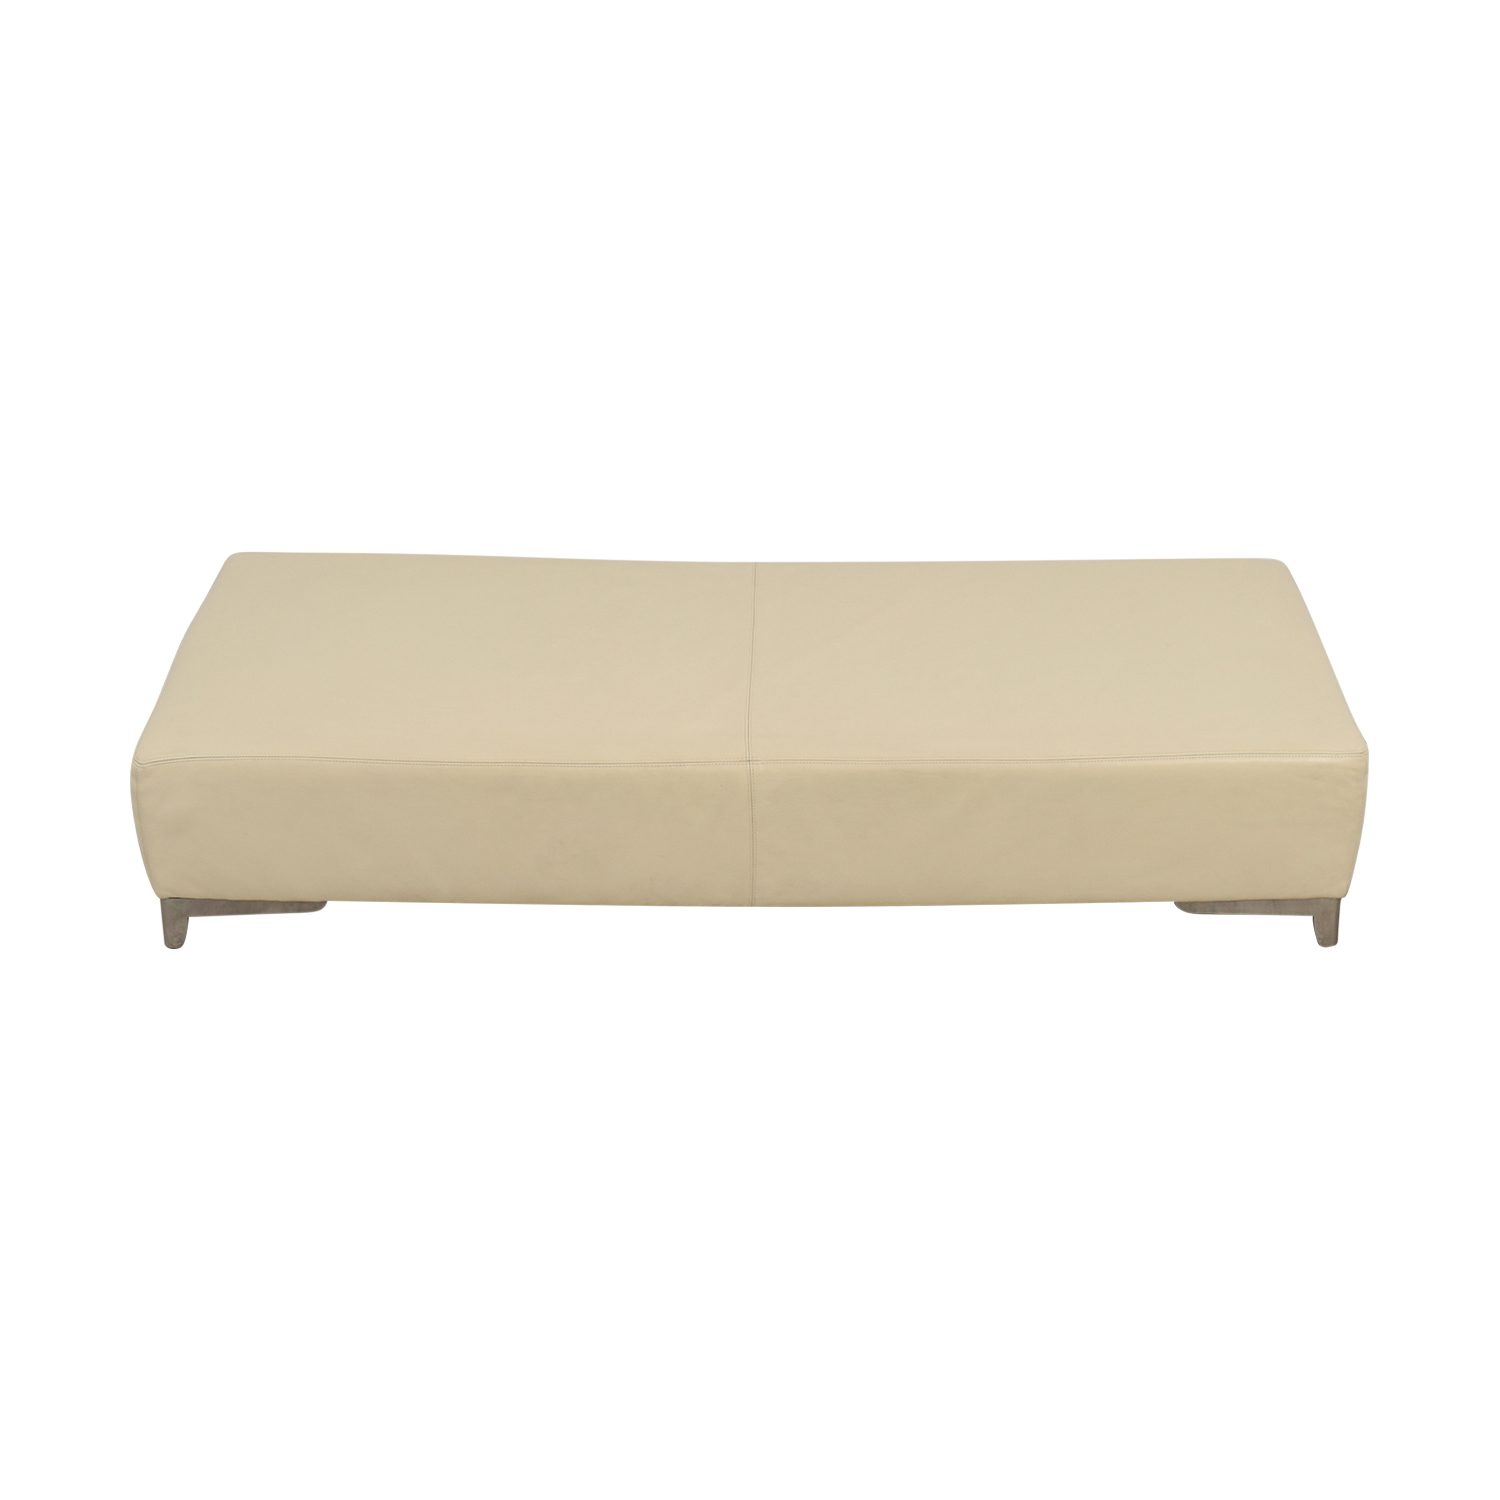 Beige Leather Coffee Table / Coffee Tables